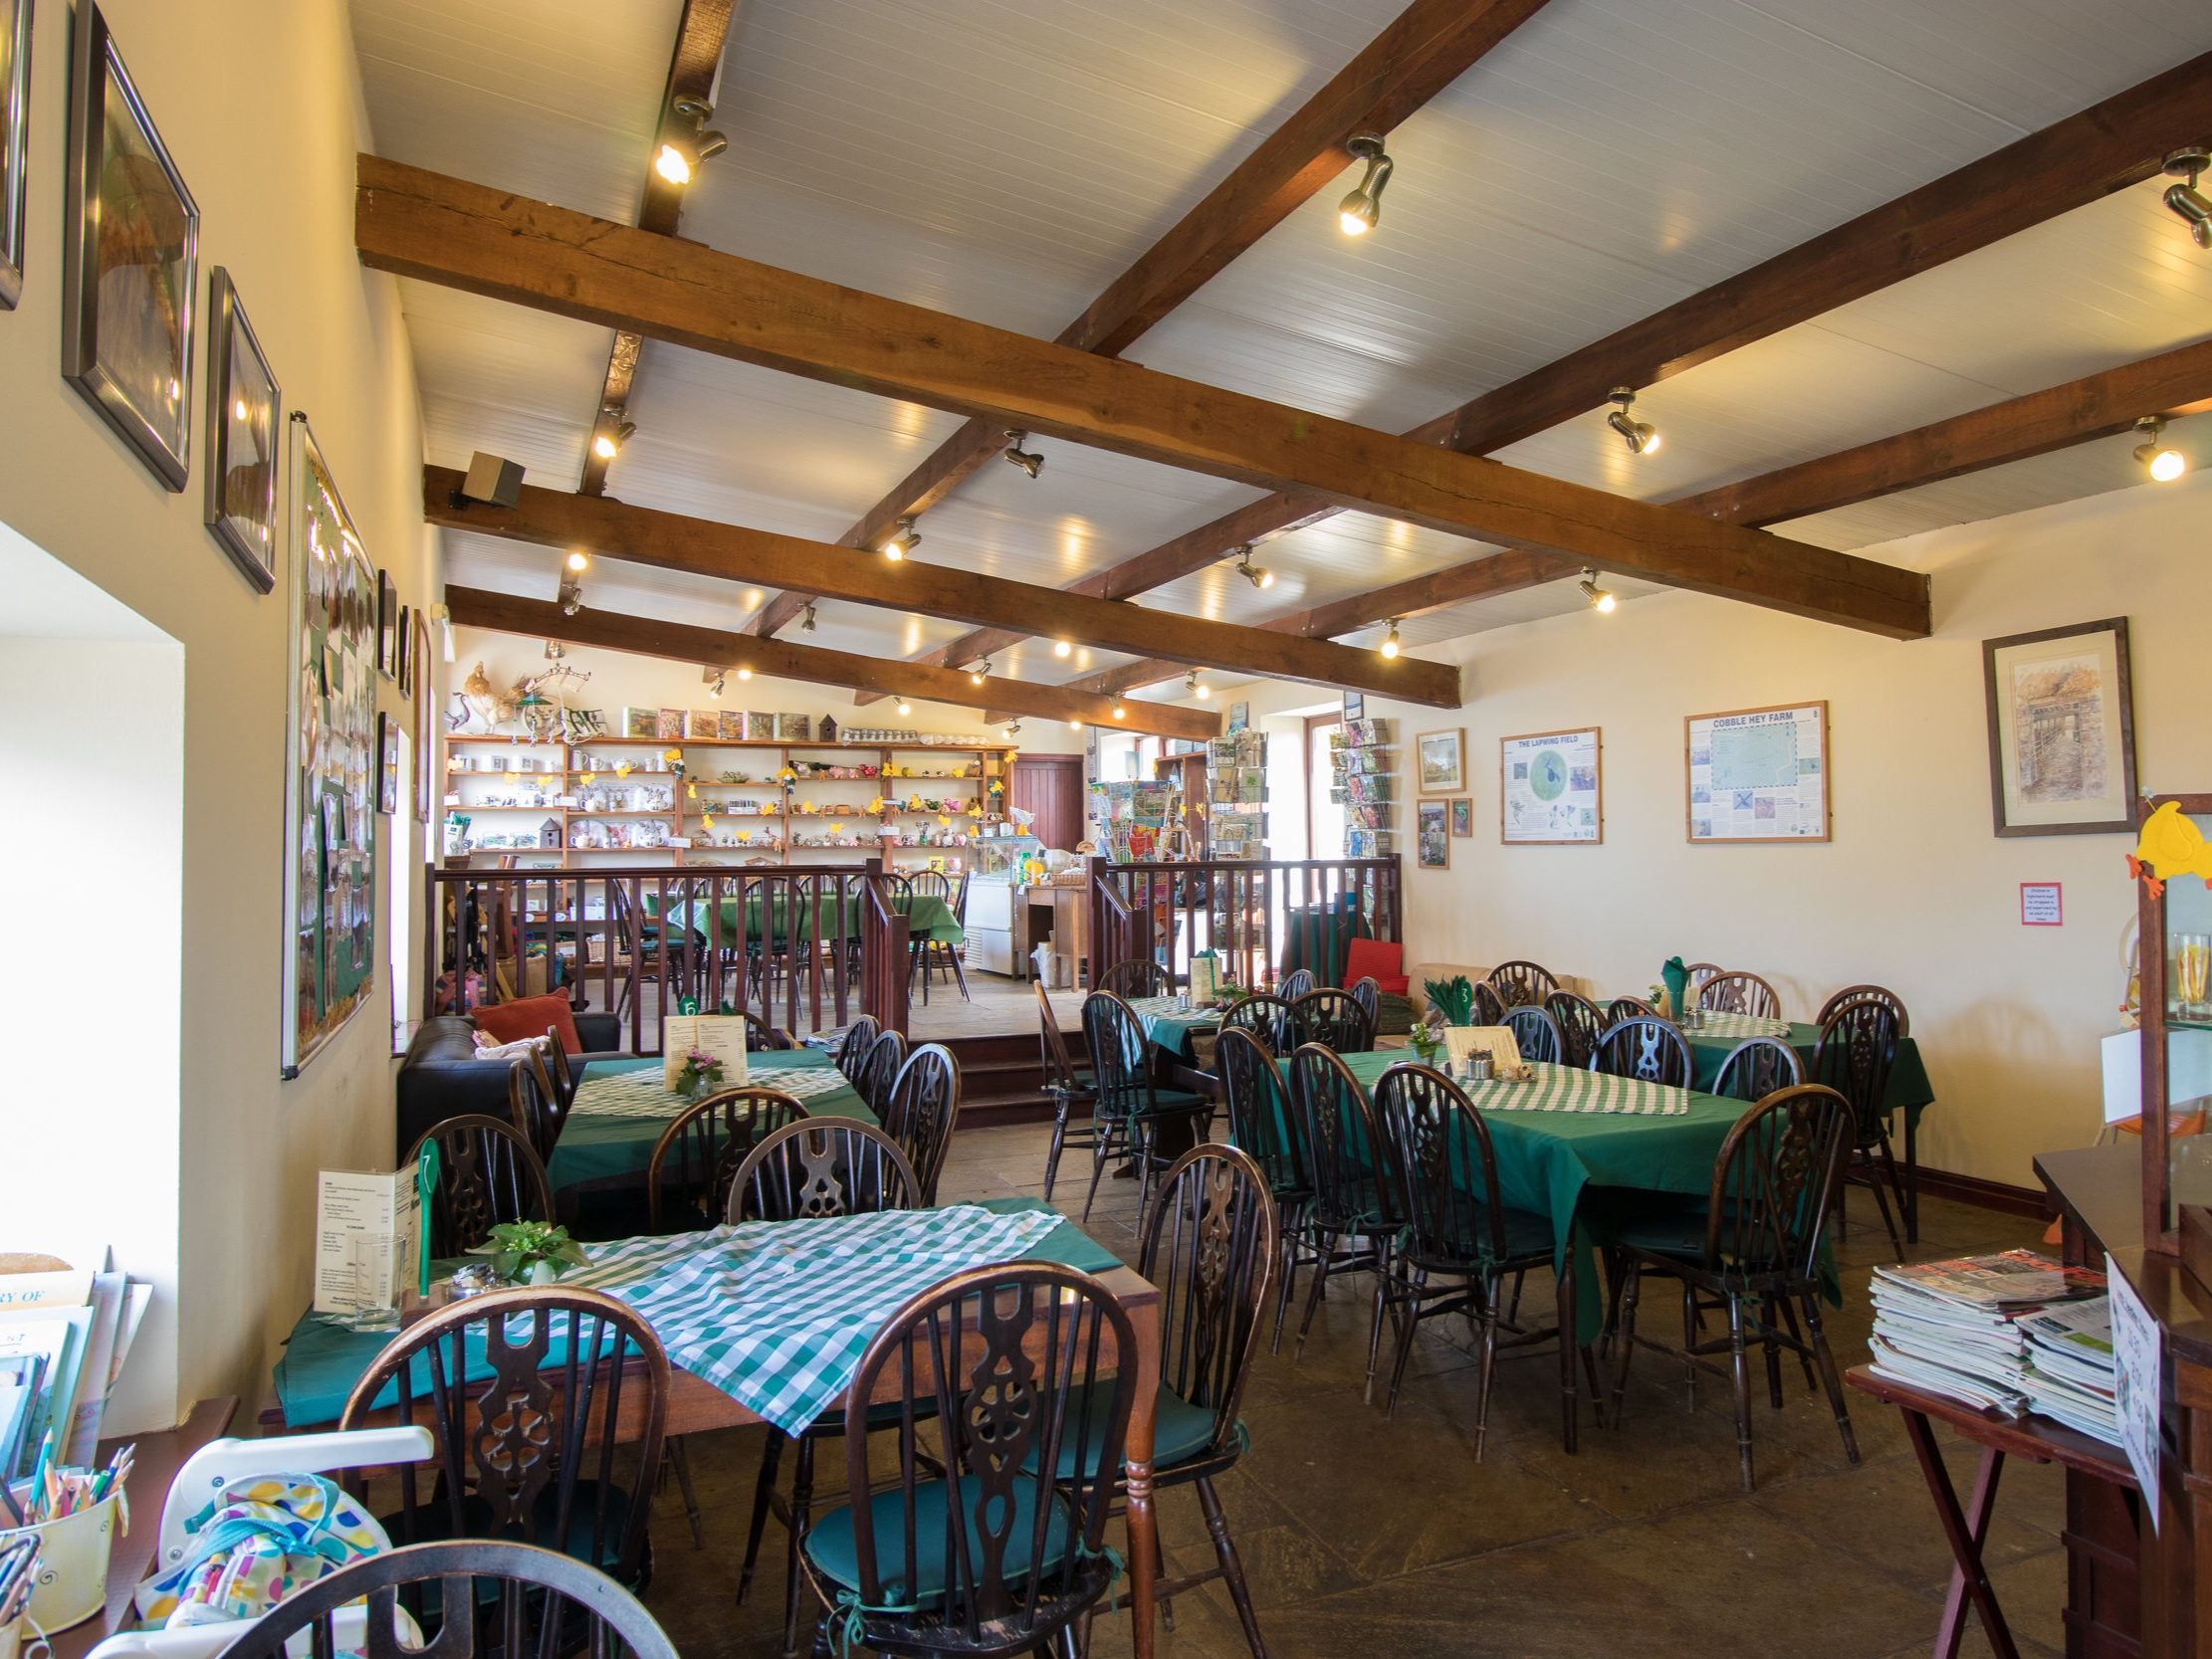 CAFE - Enjoy light lunches, hot and cold drinks, and homemade cakes in the farm cafe.